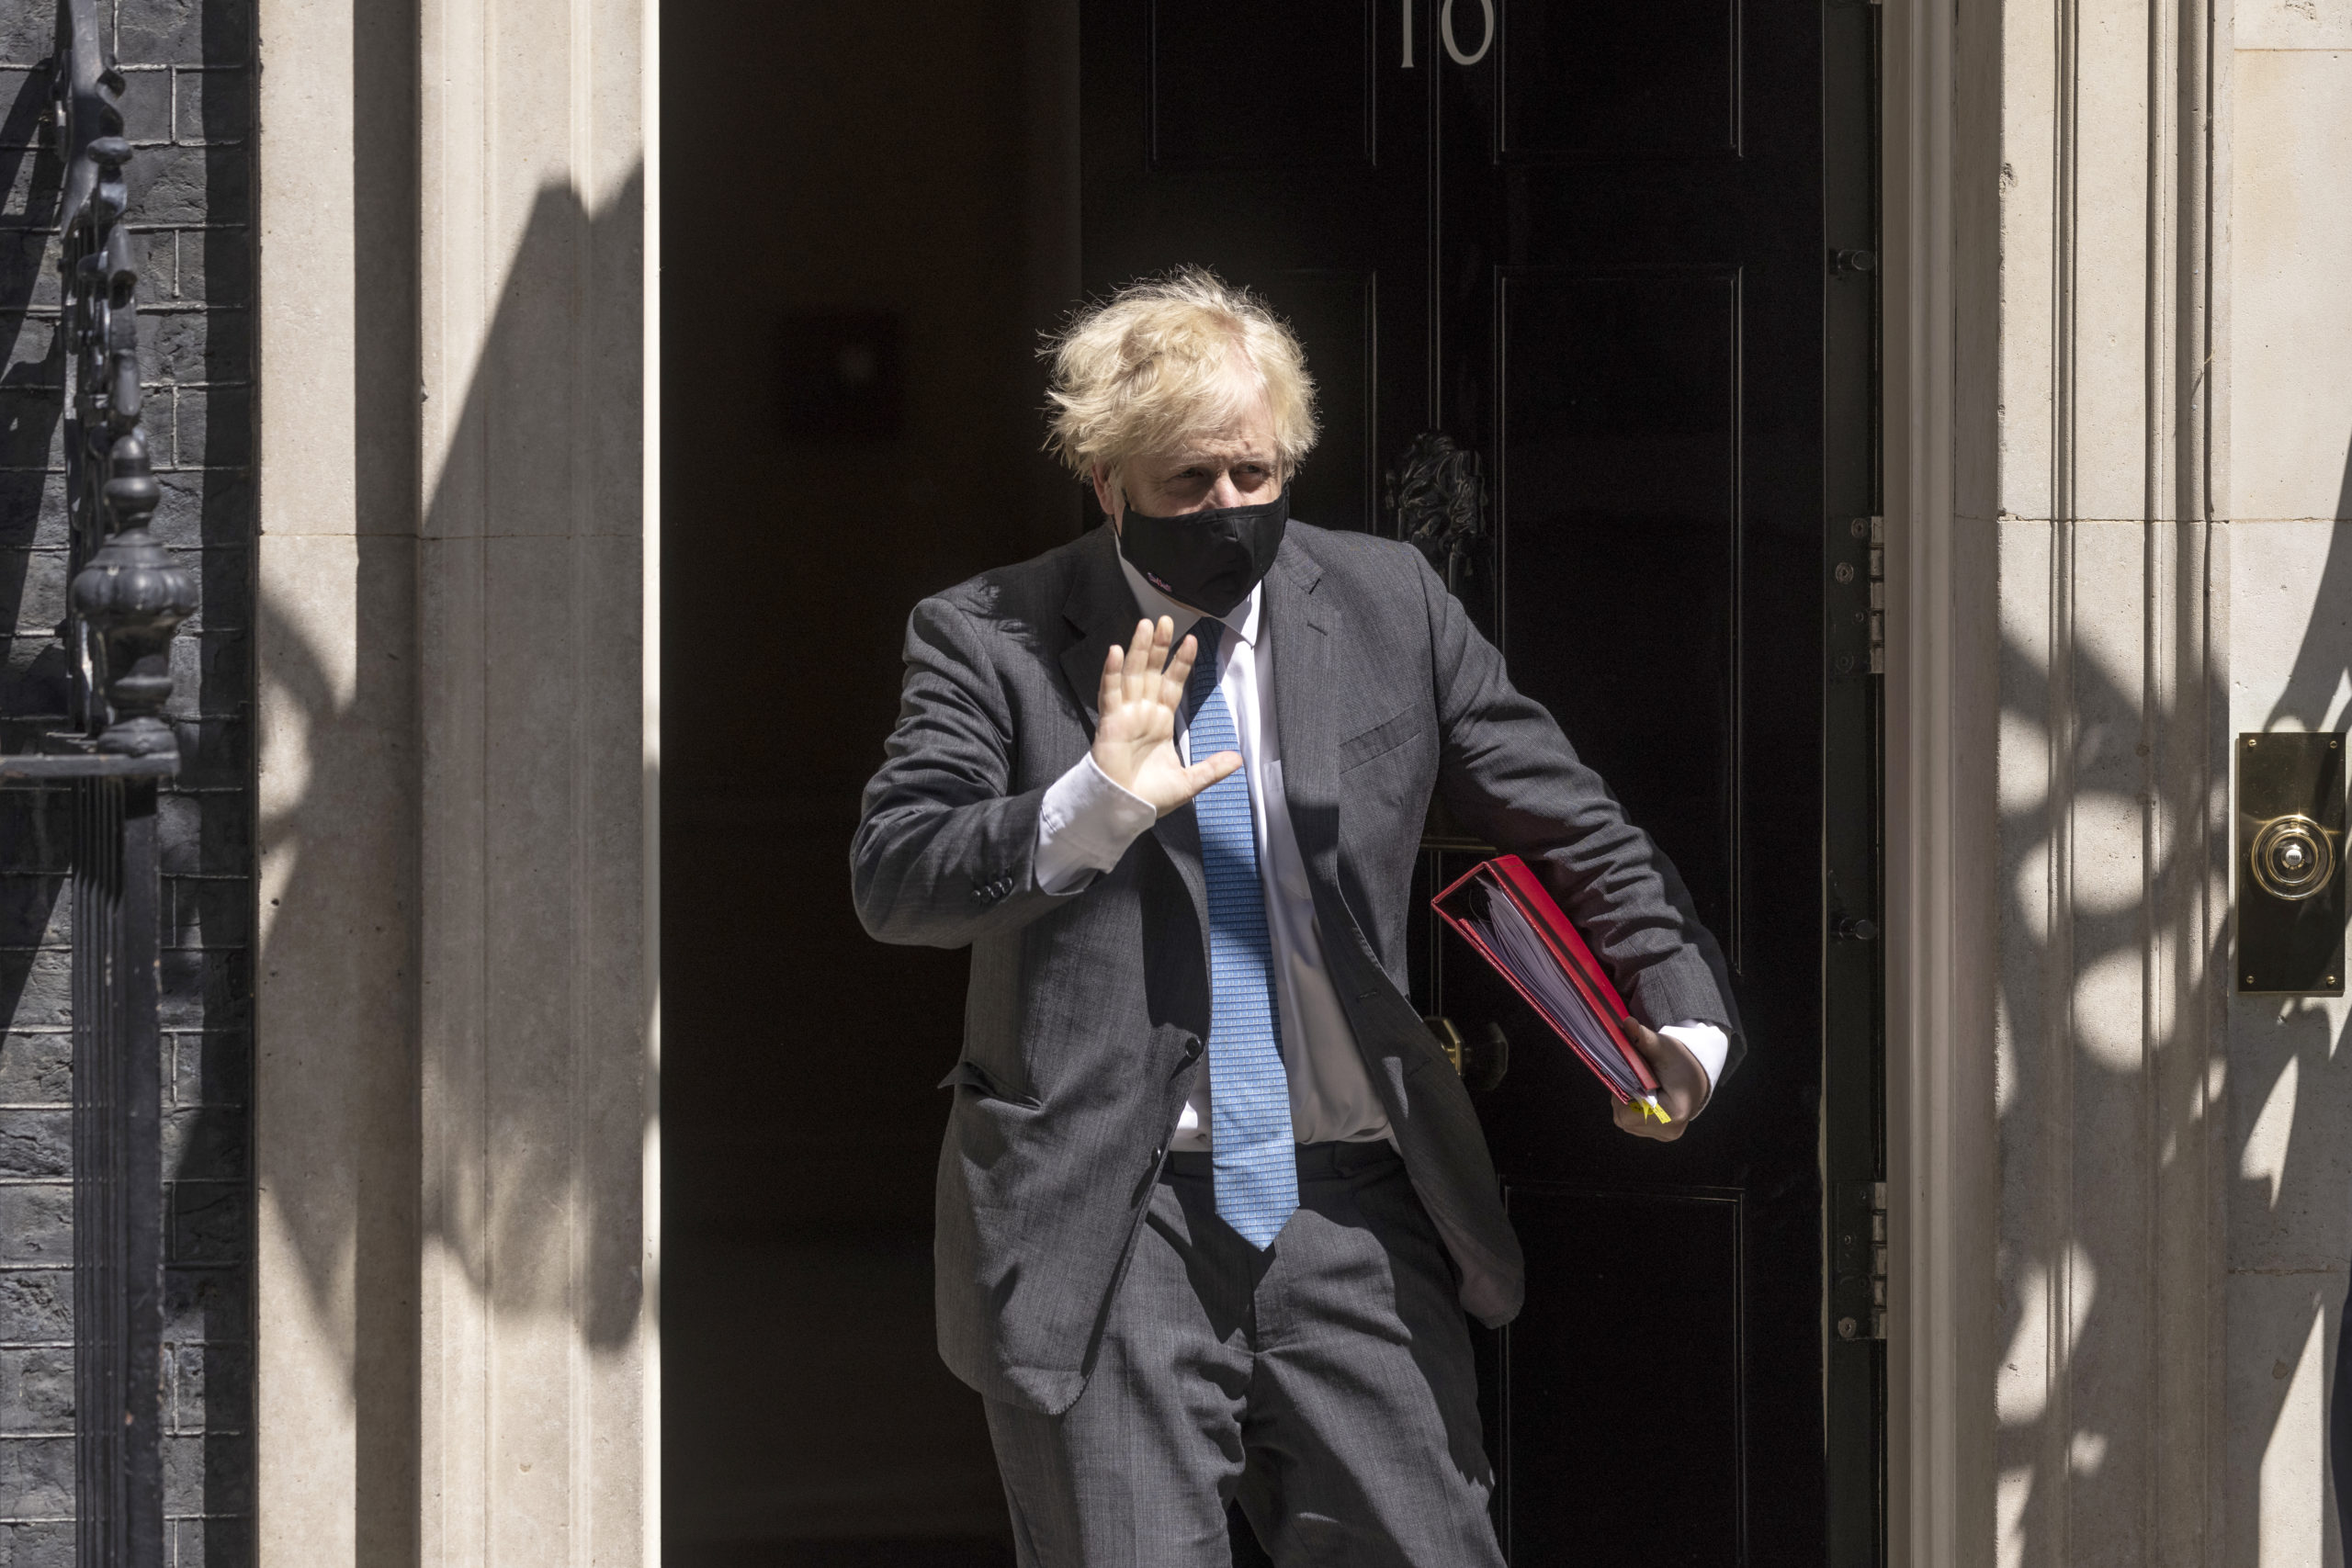 British Prime Minister Boris Johnson leaves 10 Downing Street wearing a face mask on June 23 in London, England. (Dan Kitwood/Getty Images)